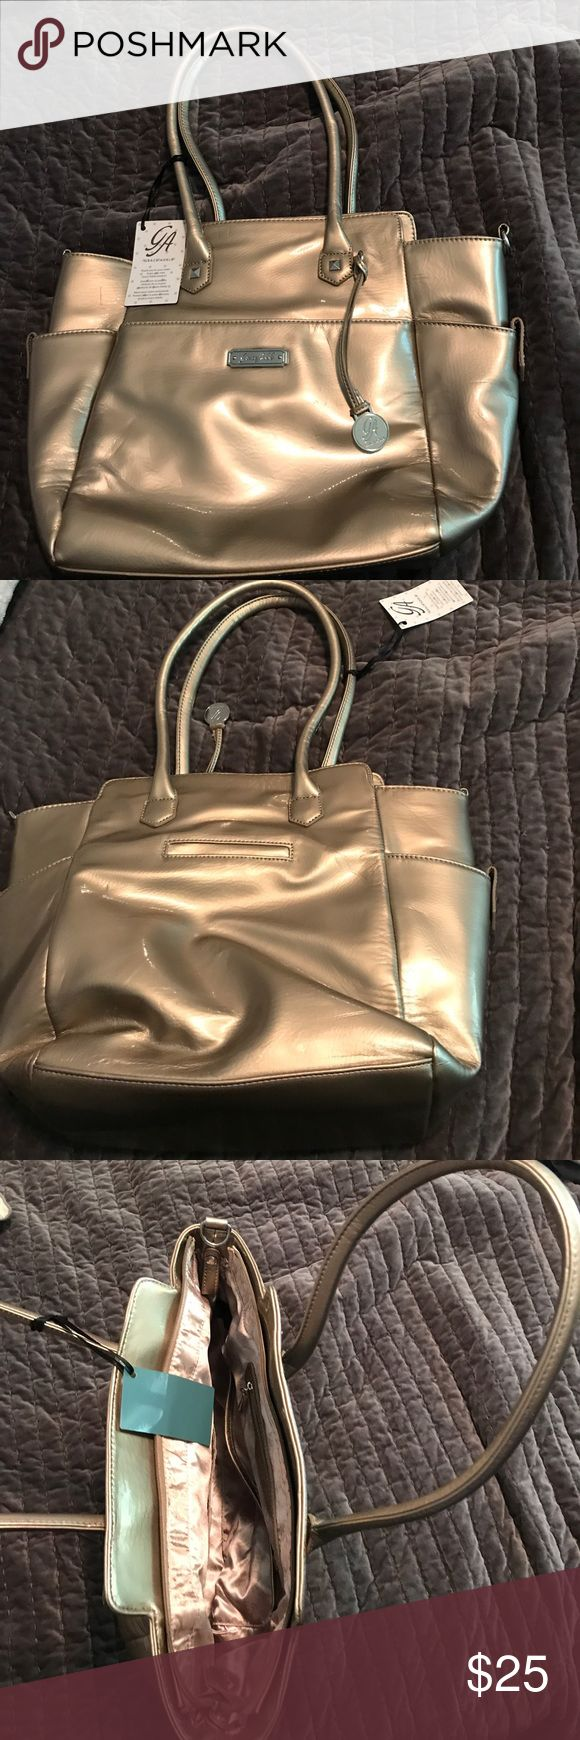 Brand new grace adele bag Brand new with tags. Grace Adele metallic gold large shoulder bag. Never used. Shiny gold interior with many pockets grace adele Bags Shoulder Bags